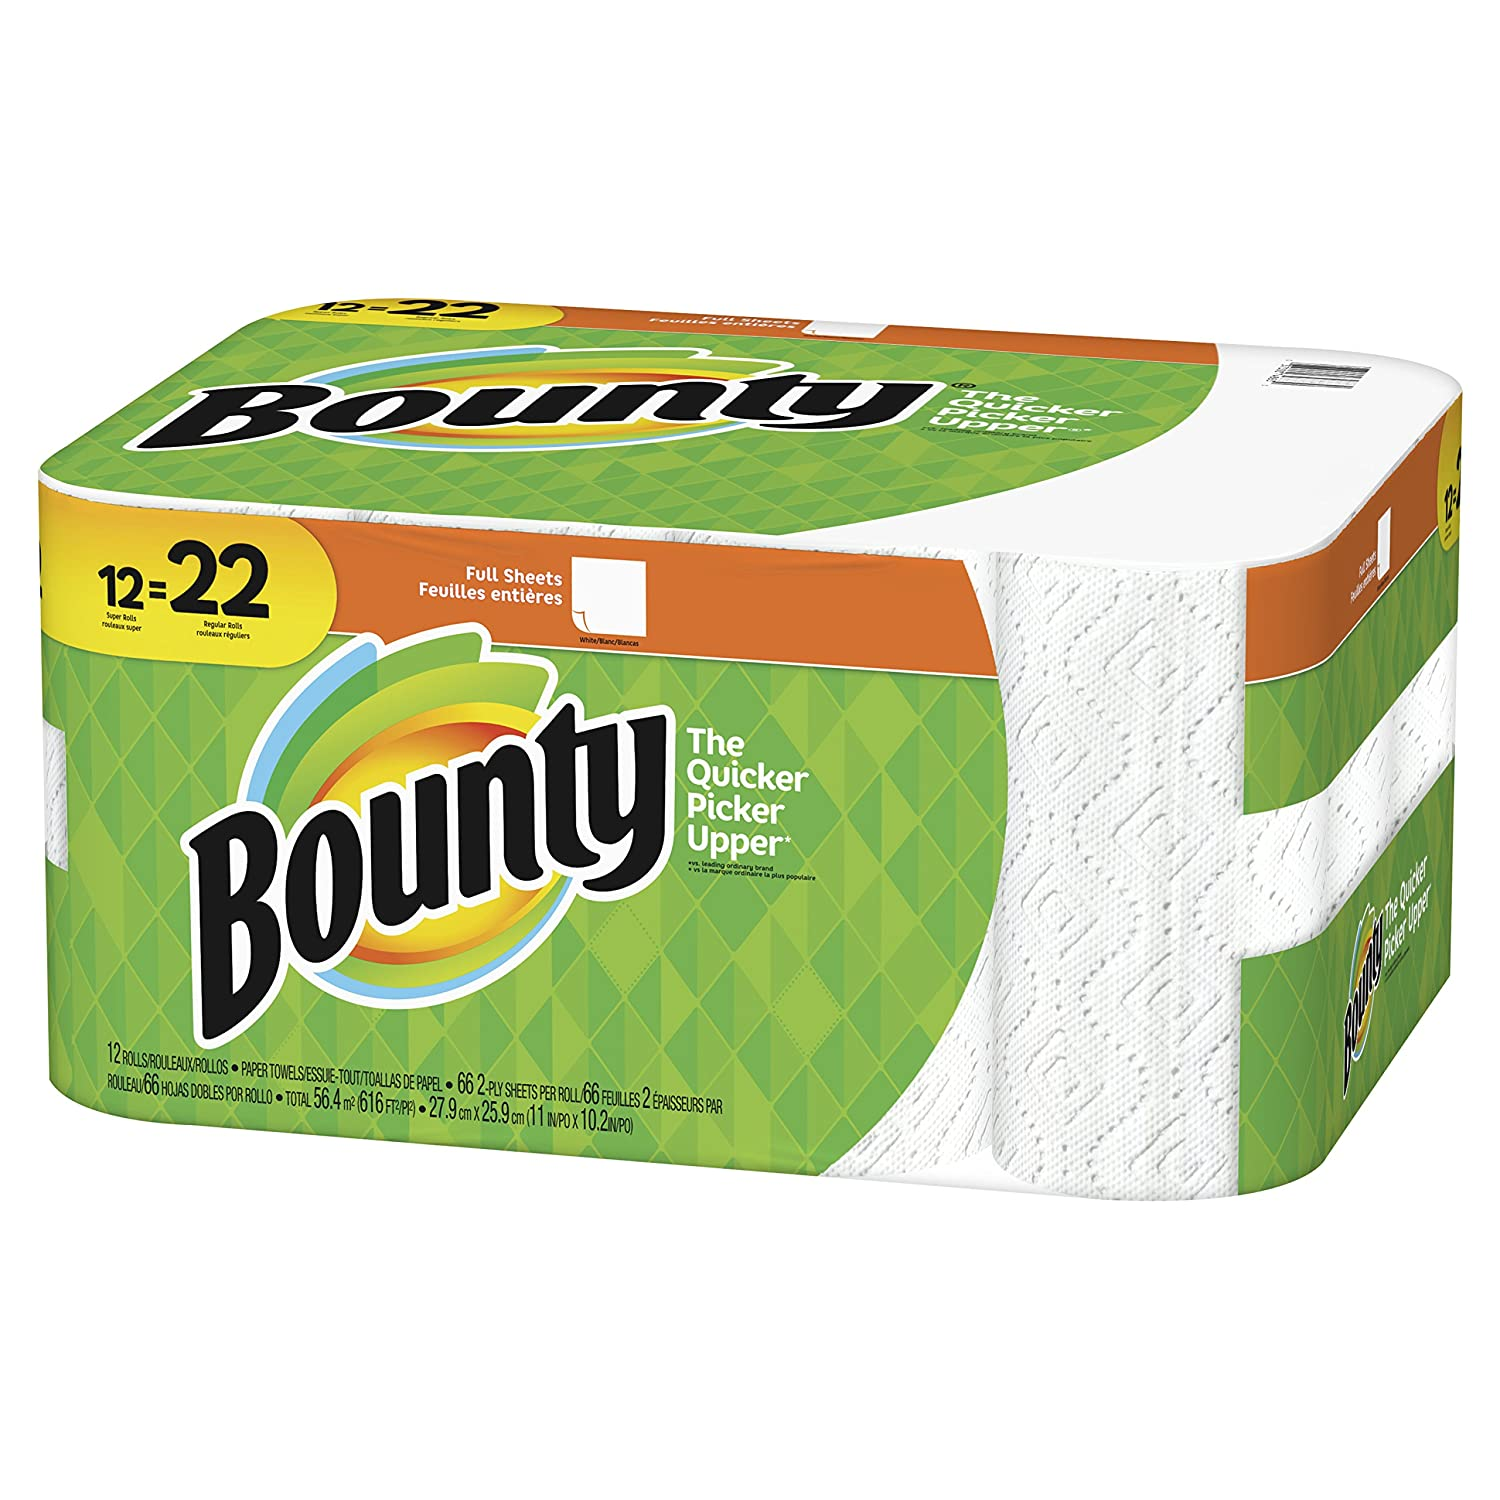 Amazon.com: Bounty Paper Towels, Full Sheet, 12 Super Rolls: Health & Personal Care